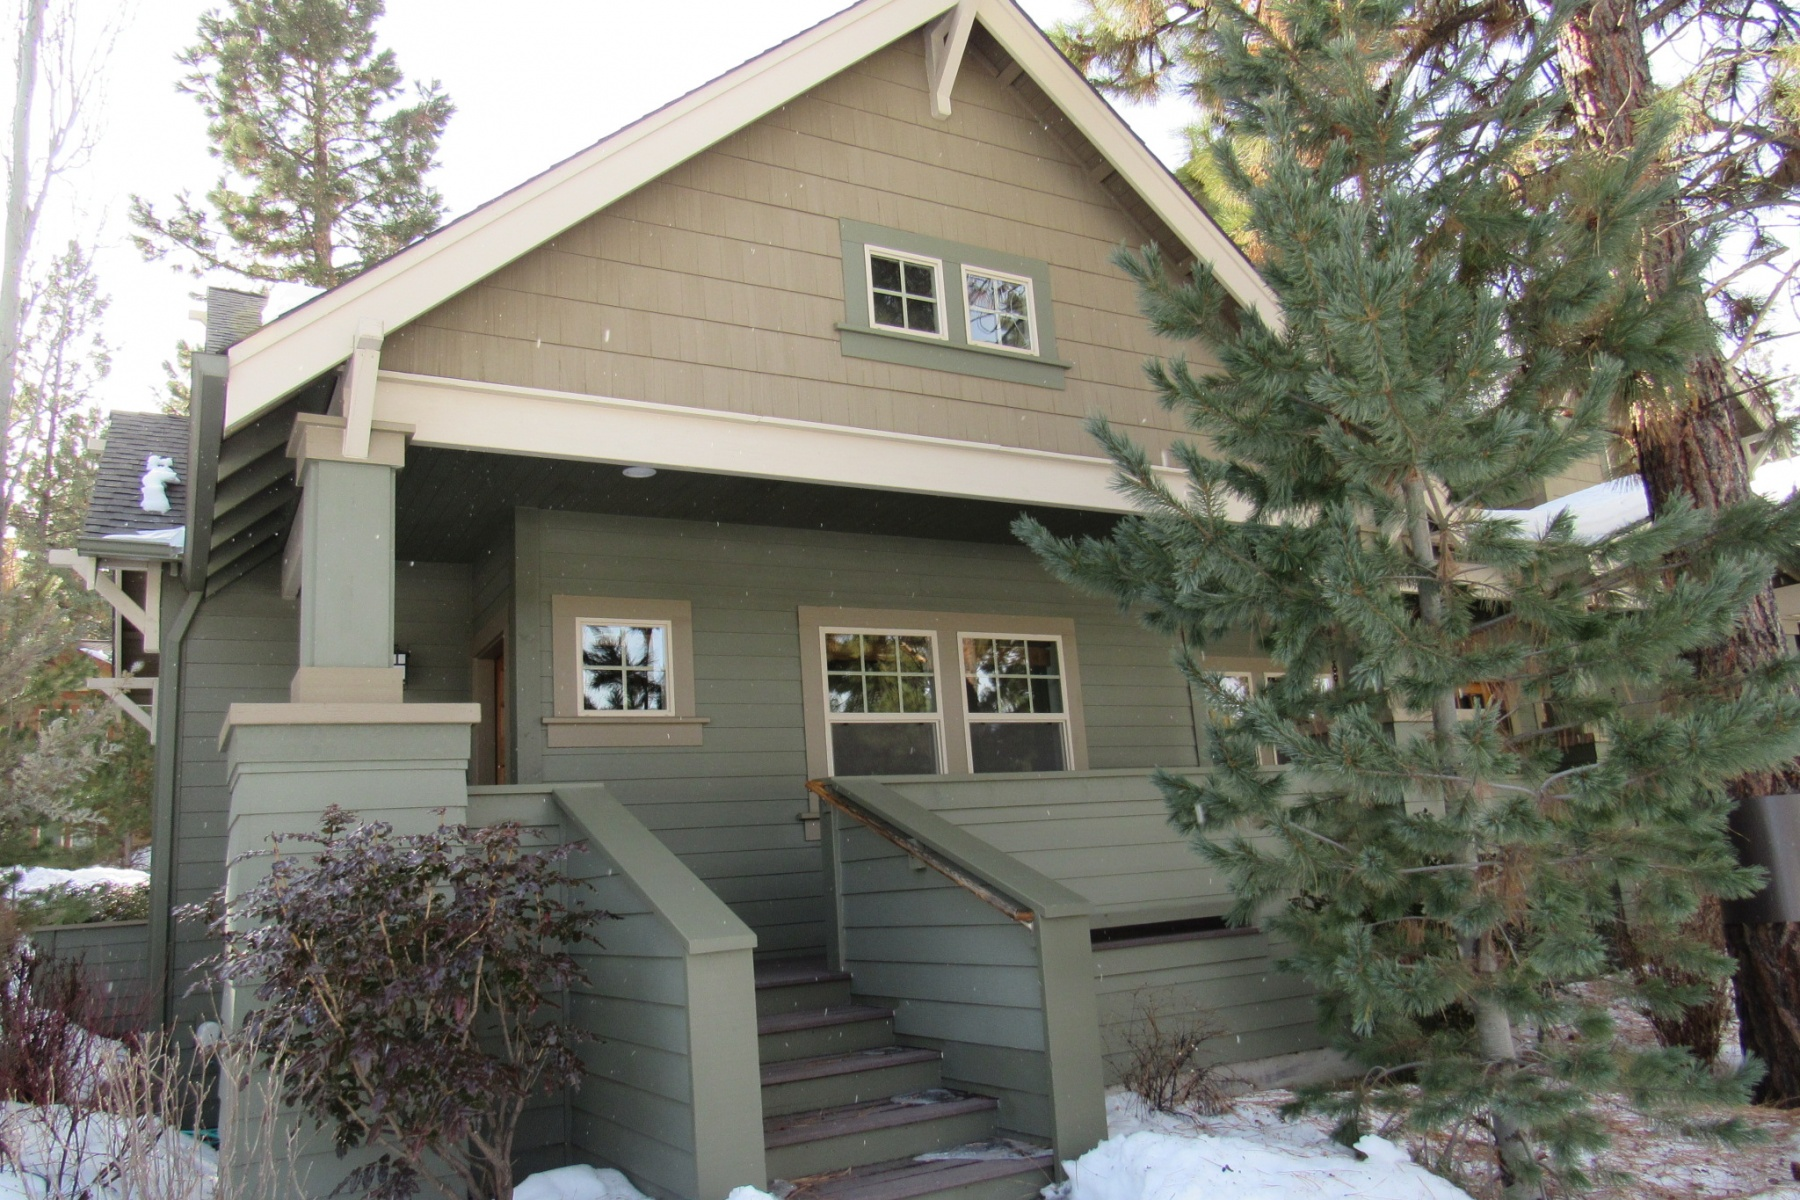 Condominium for Sale at A Gem in Northwest Crossing 2339 NW Labiche Ln 5 Bend, Oregon, 97703 United States